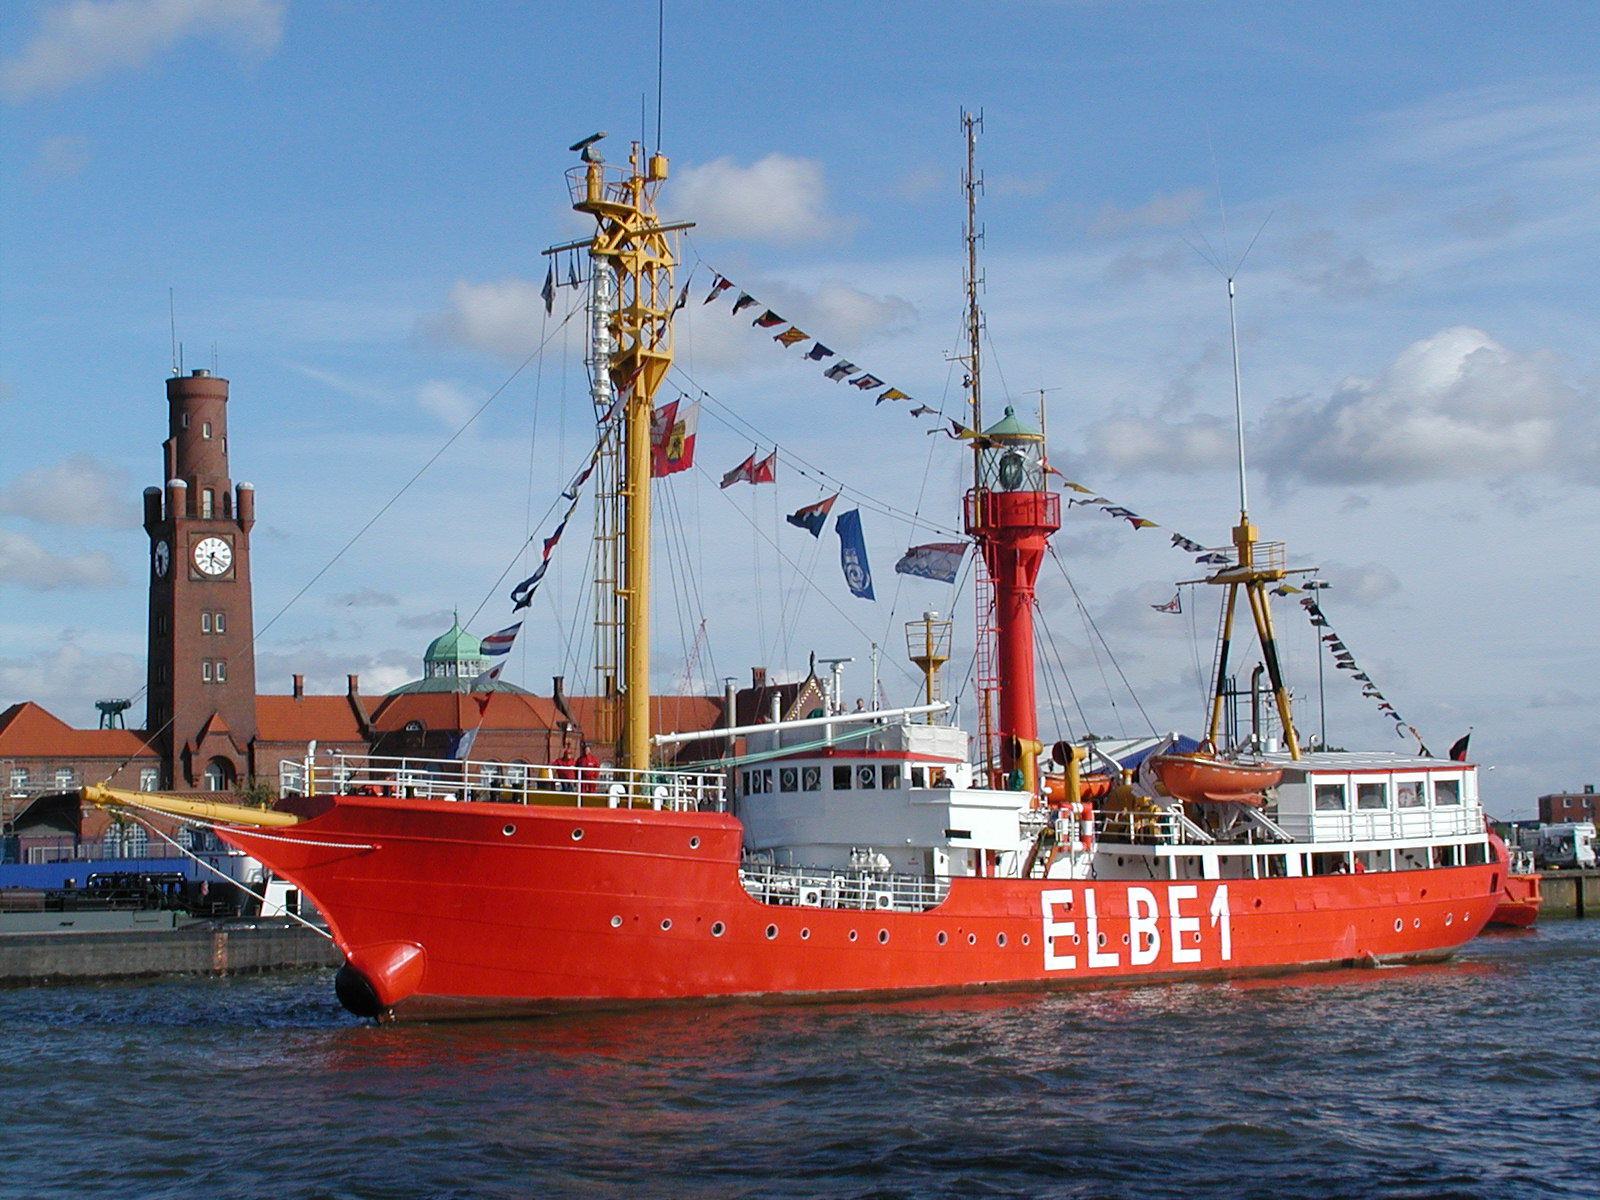 Photo of lightship ELBE 1 courtesy of WikiMedia.